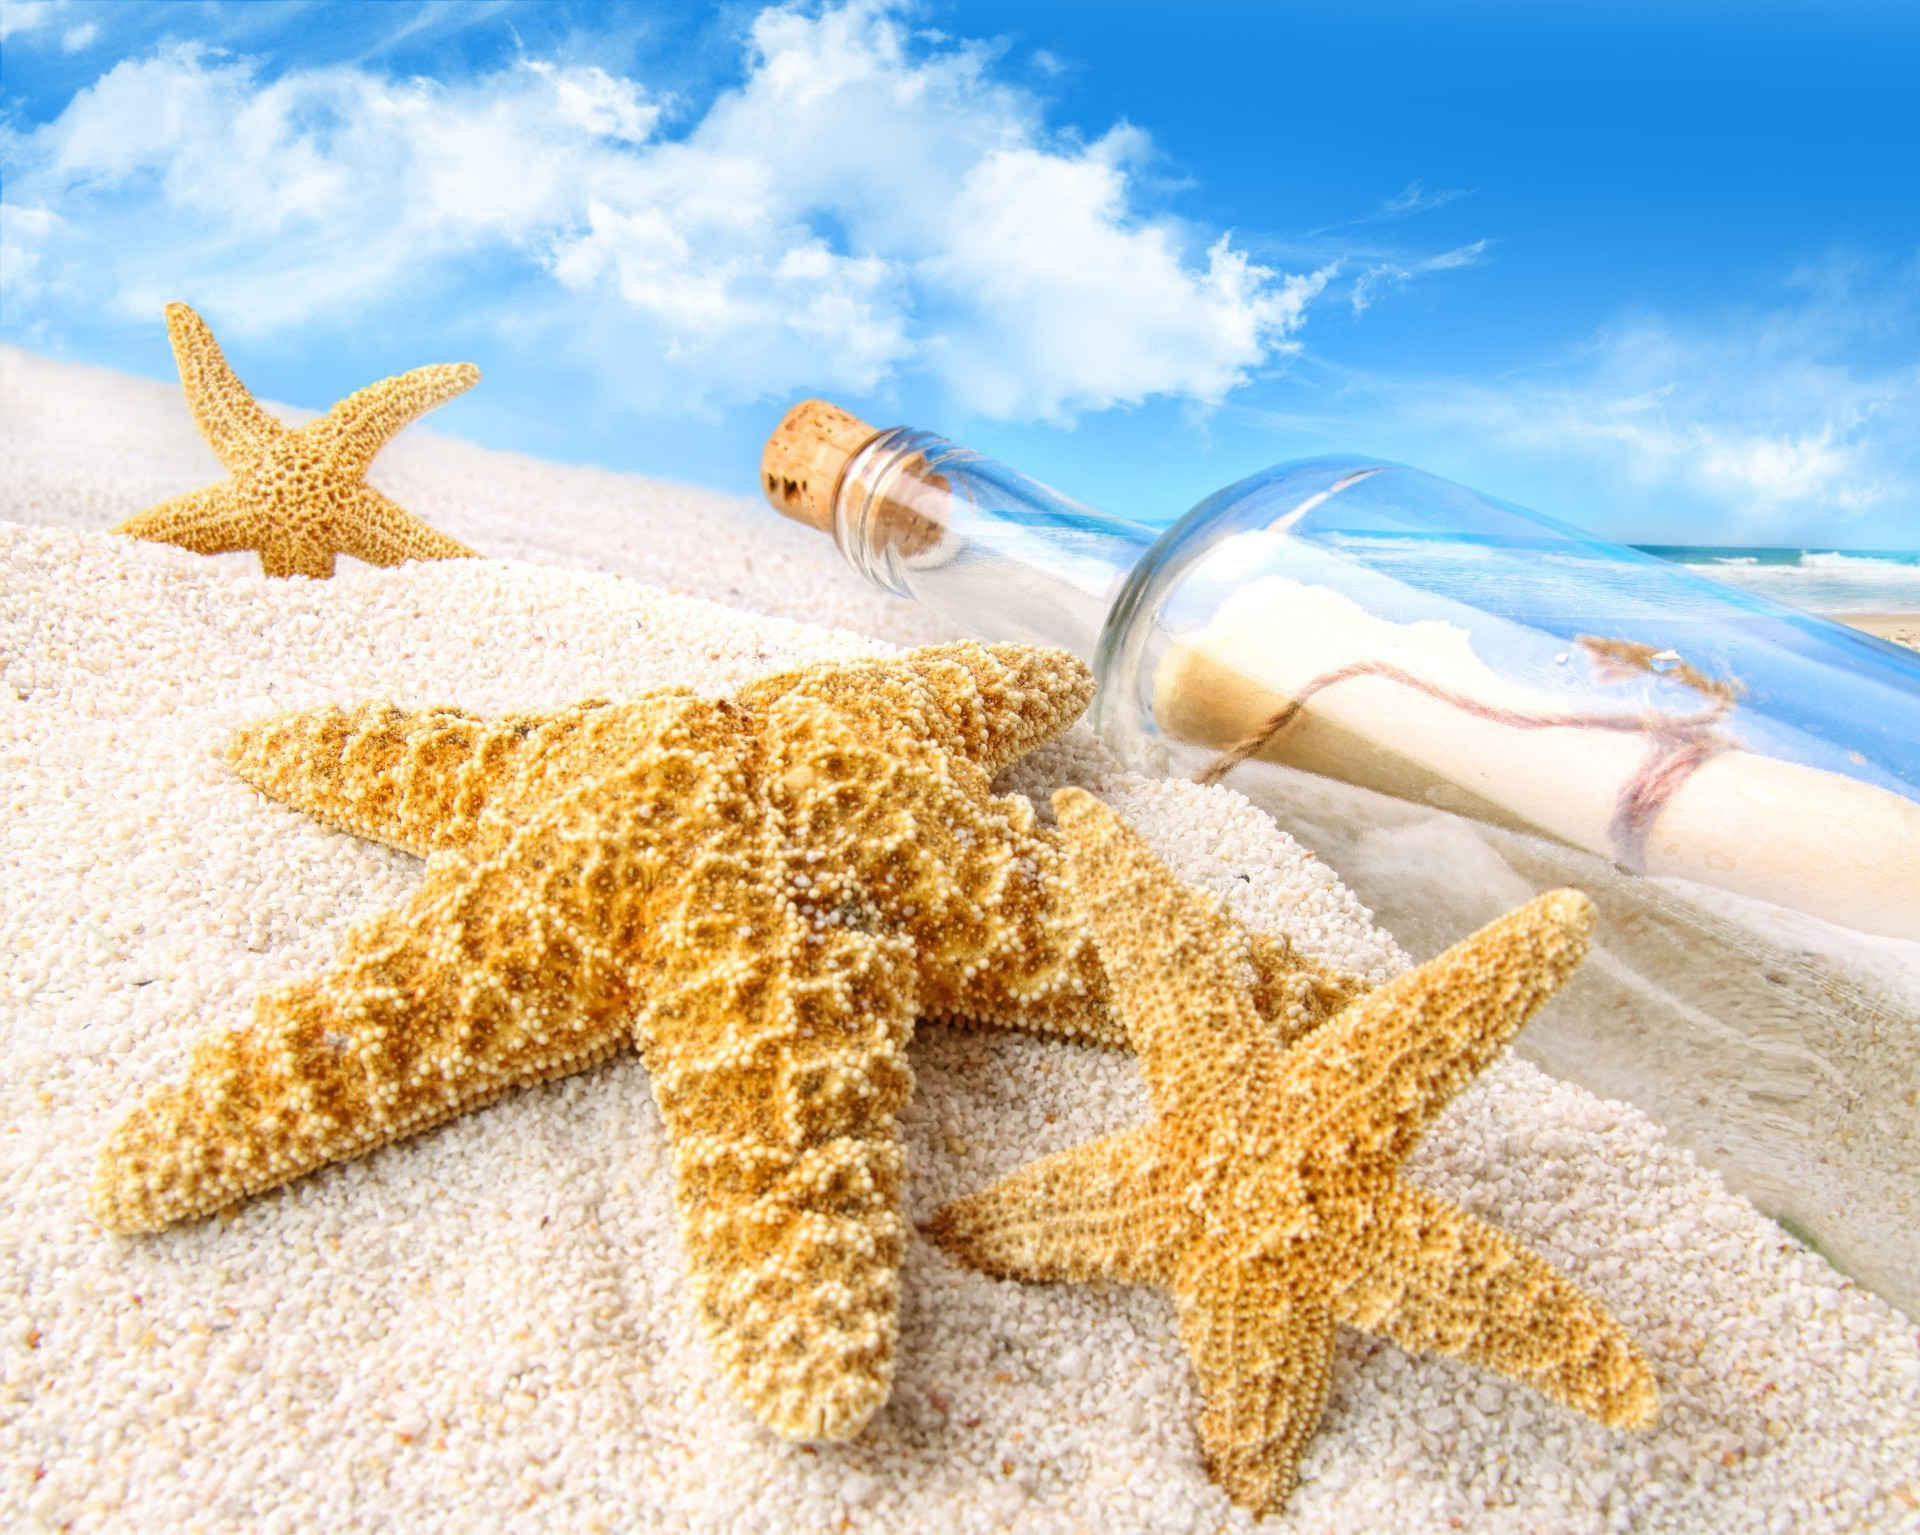 Bottle with a letter and starfish on the sand